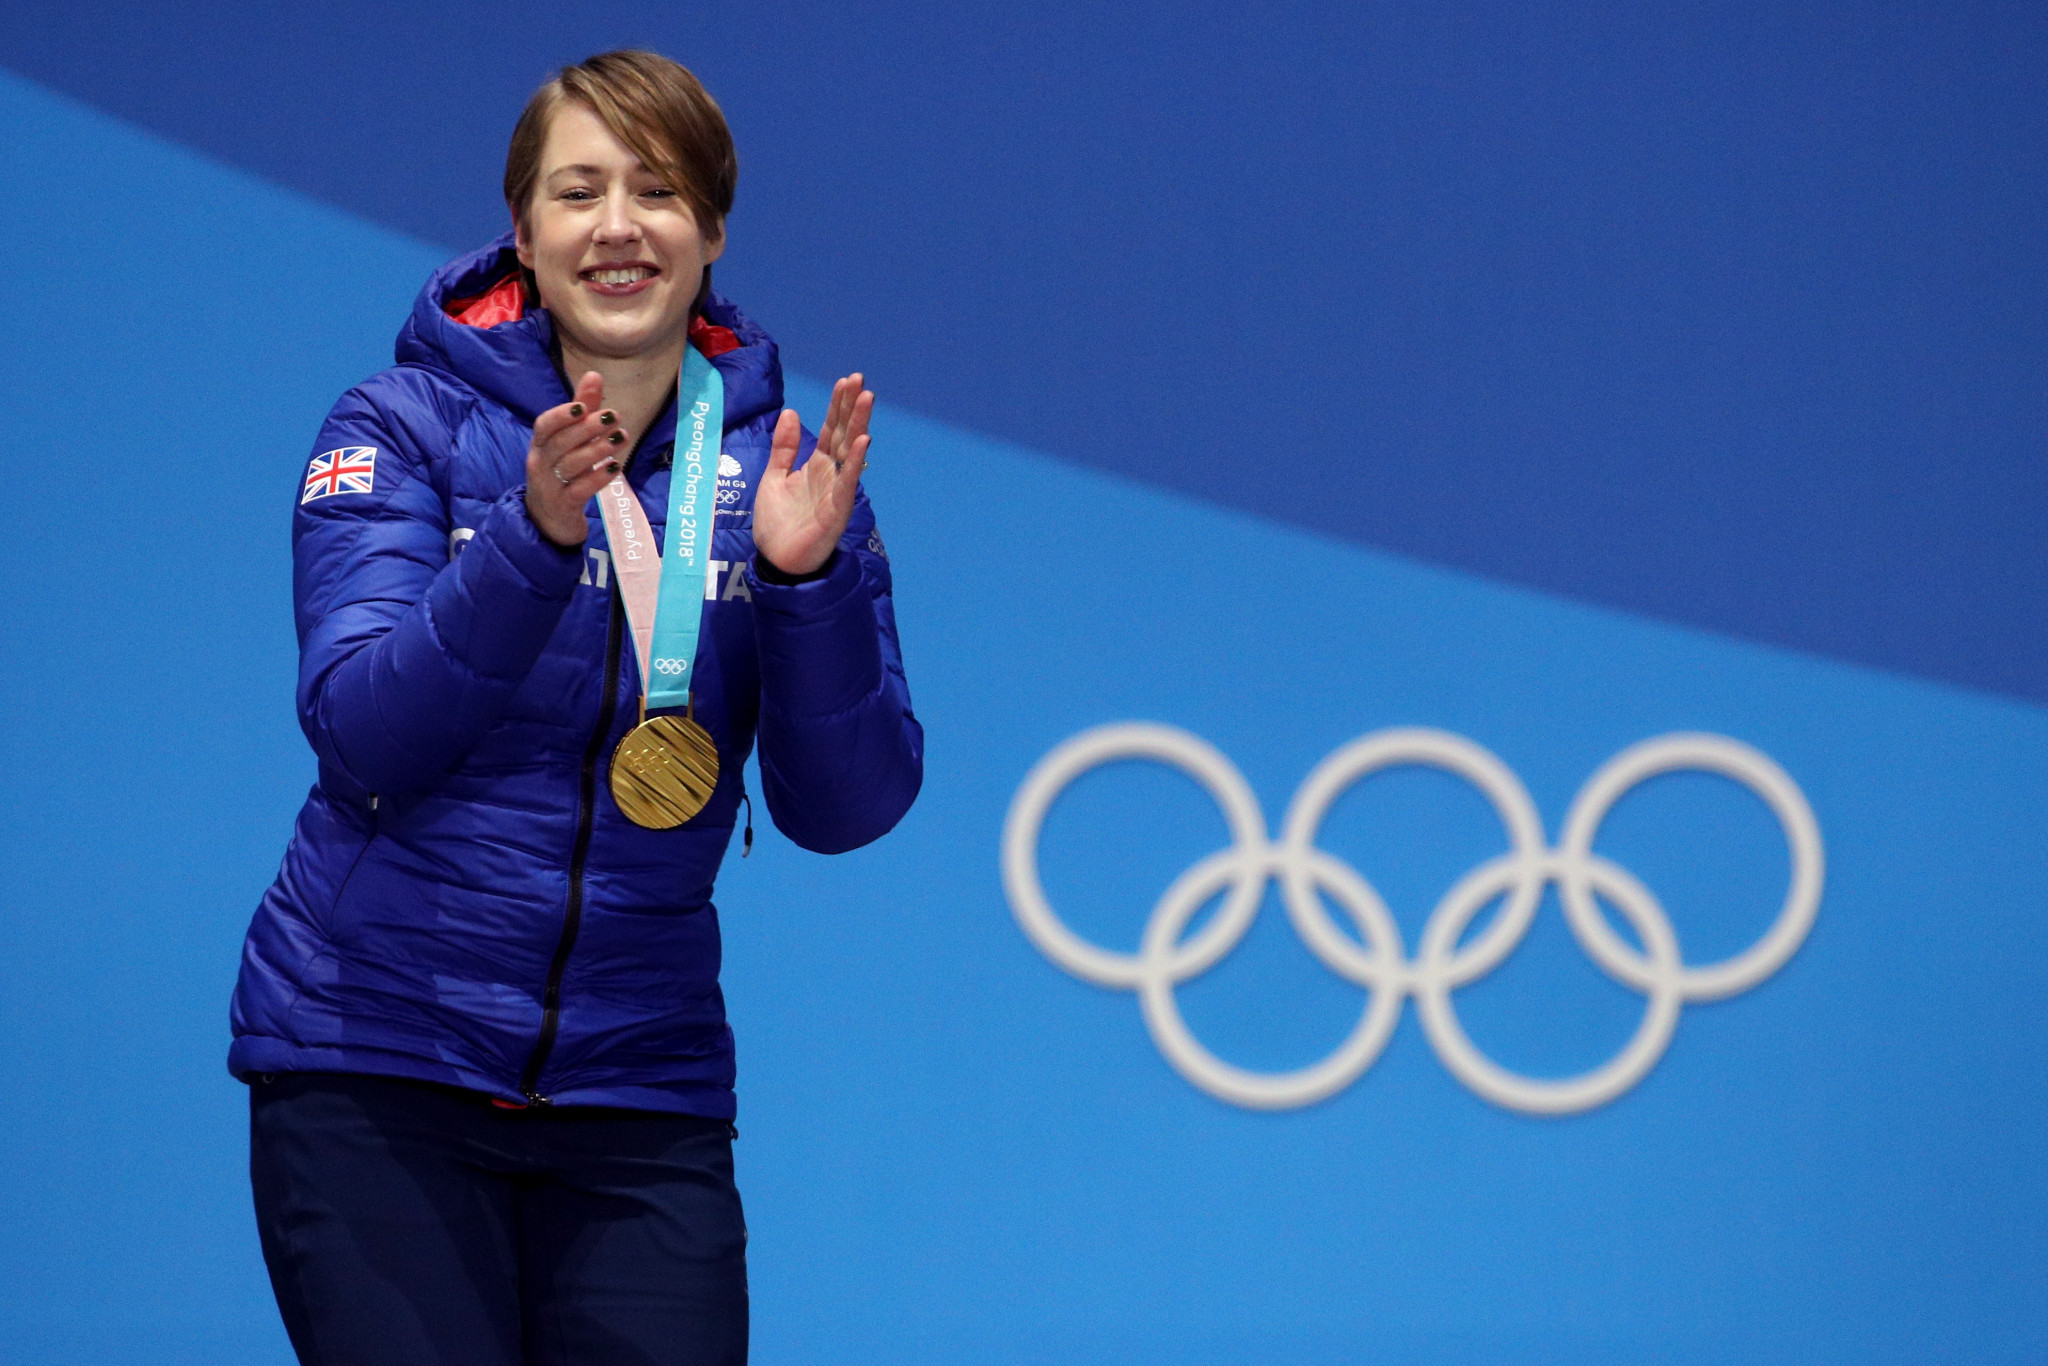 Lizzy Yarnold's two Olympic gold medals came during Christopher Rodrigues' tenure as chair ©Getty Images